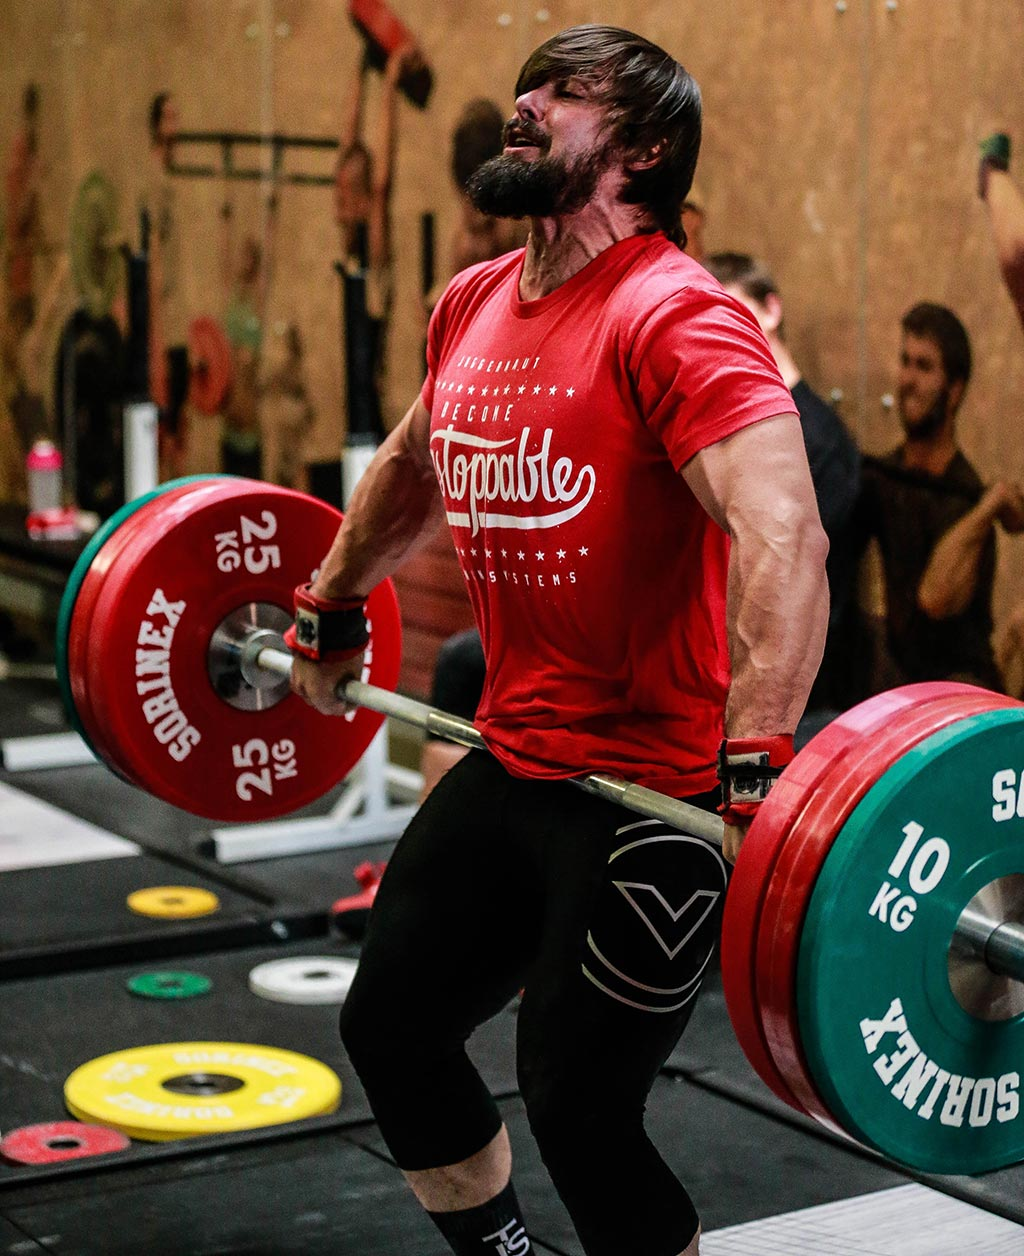 Weightlifter bro with beard and veins